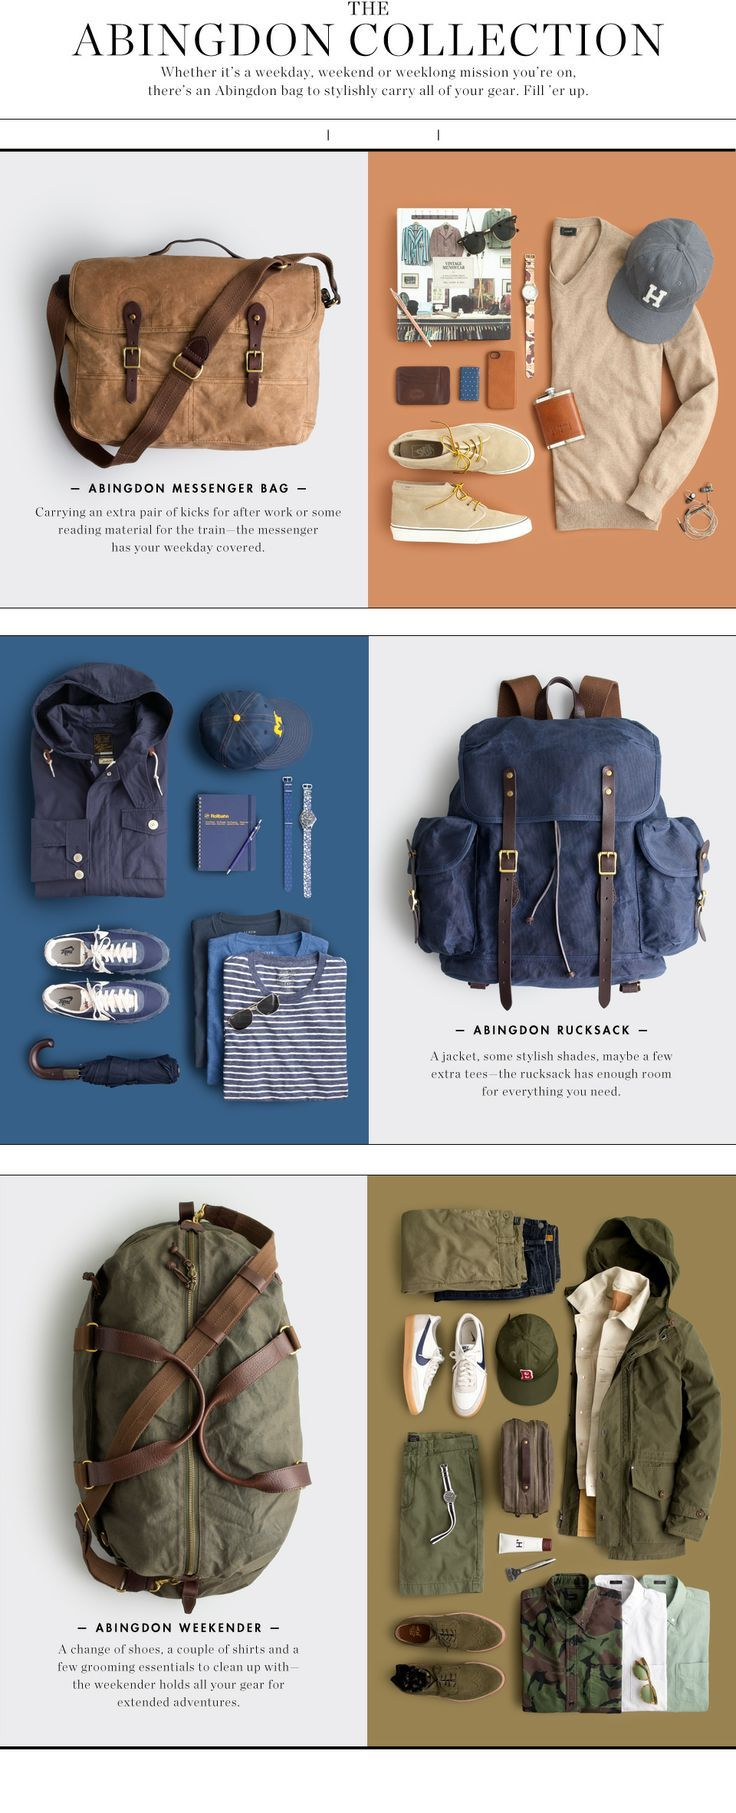 The messenger, the rucksack and the weekend bag. All essential items to a man who travels. Abingdon has a beautiful answer to them all. Found on J Crew